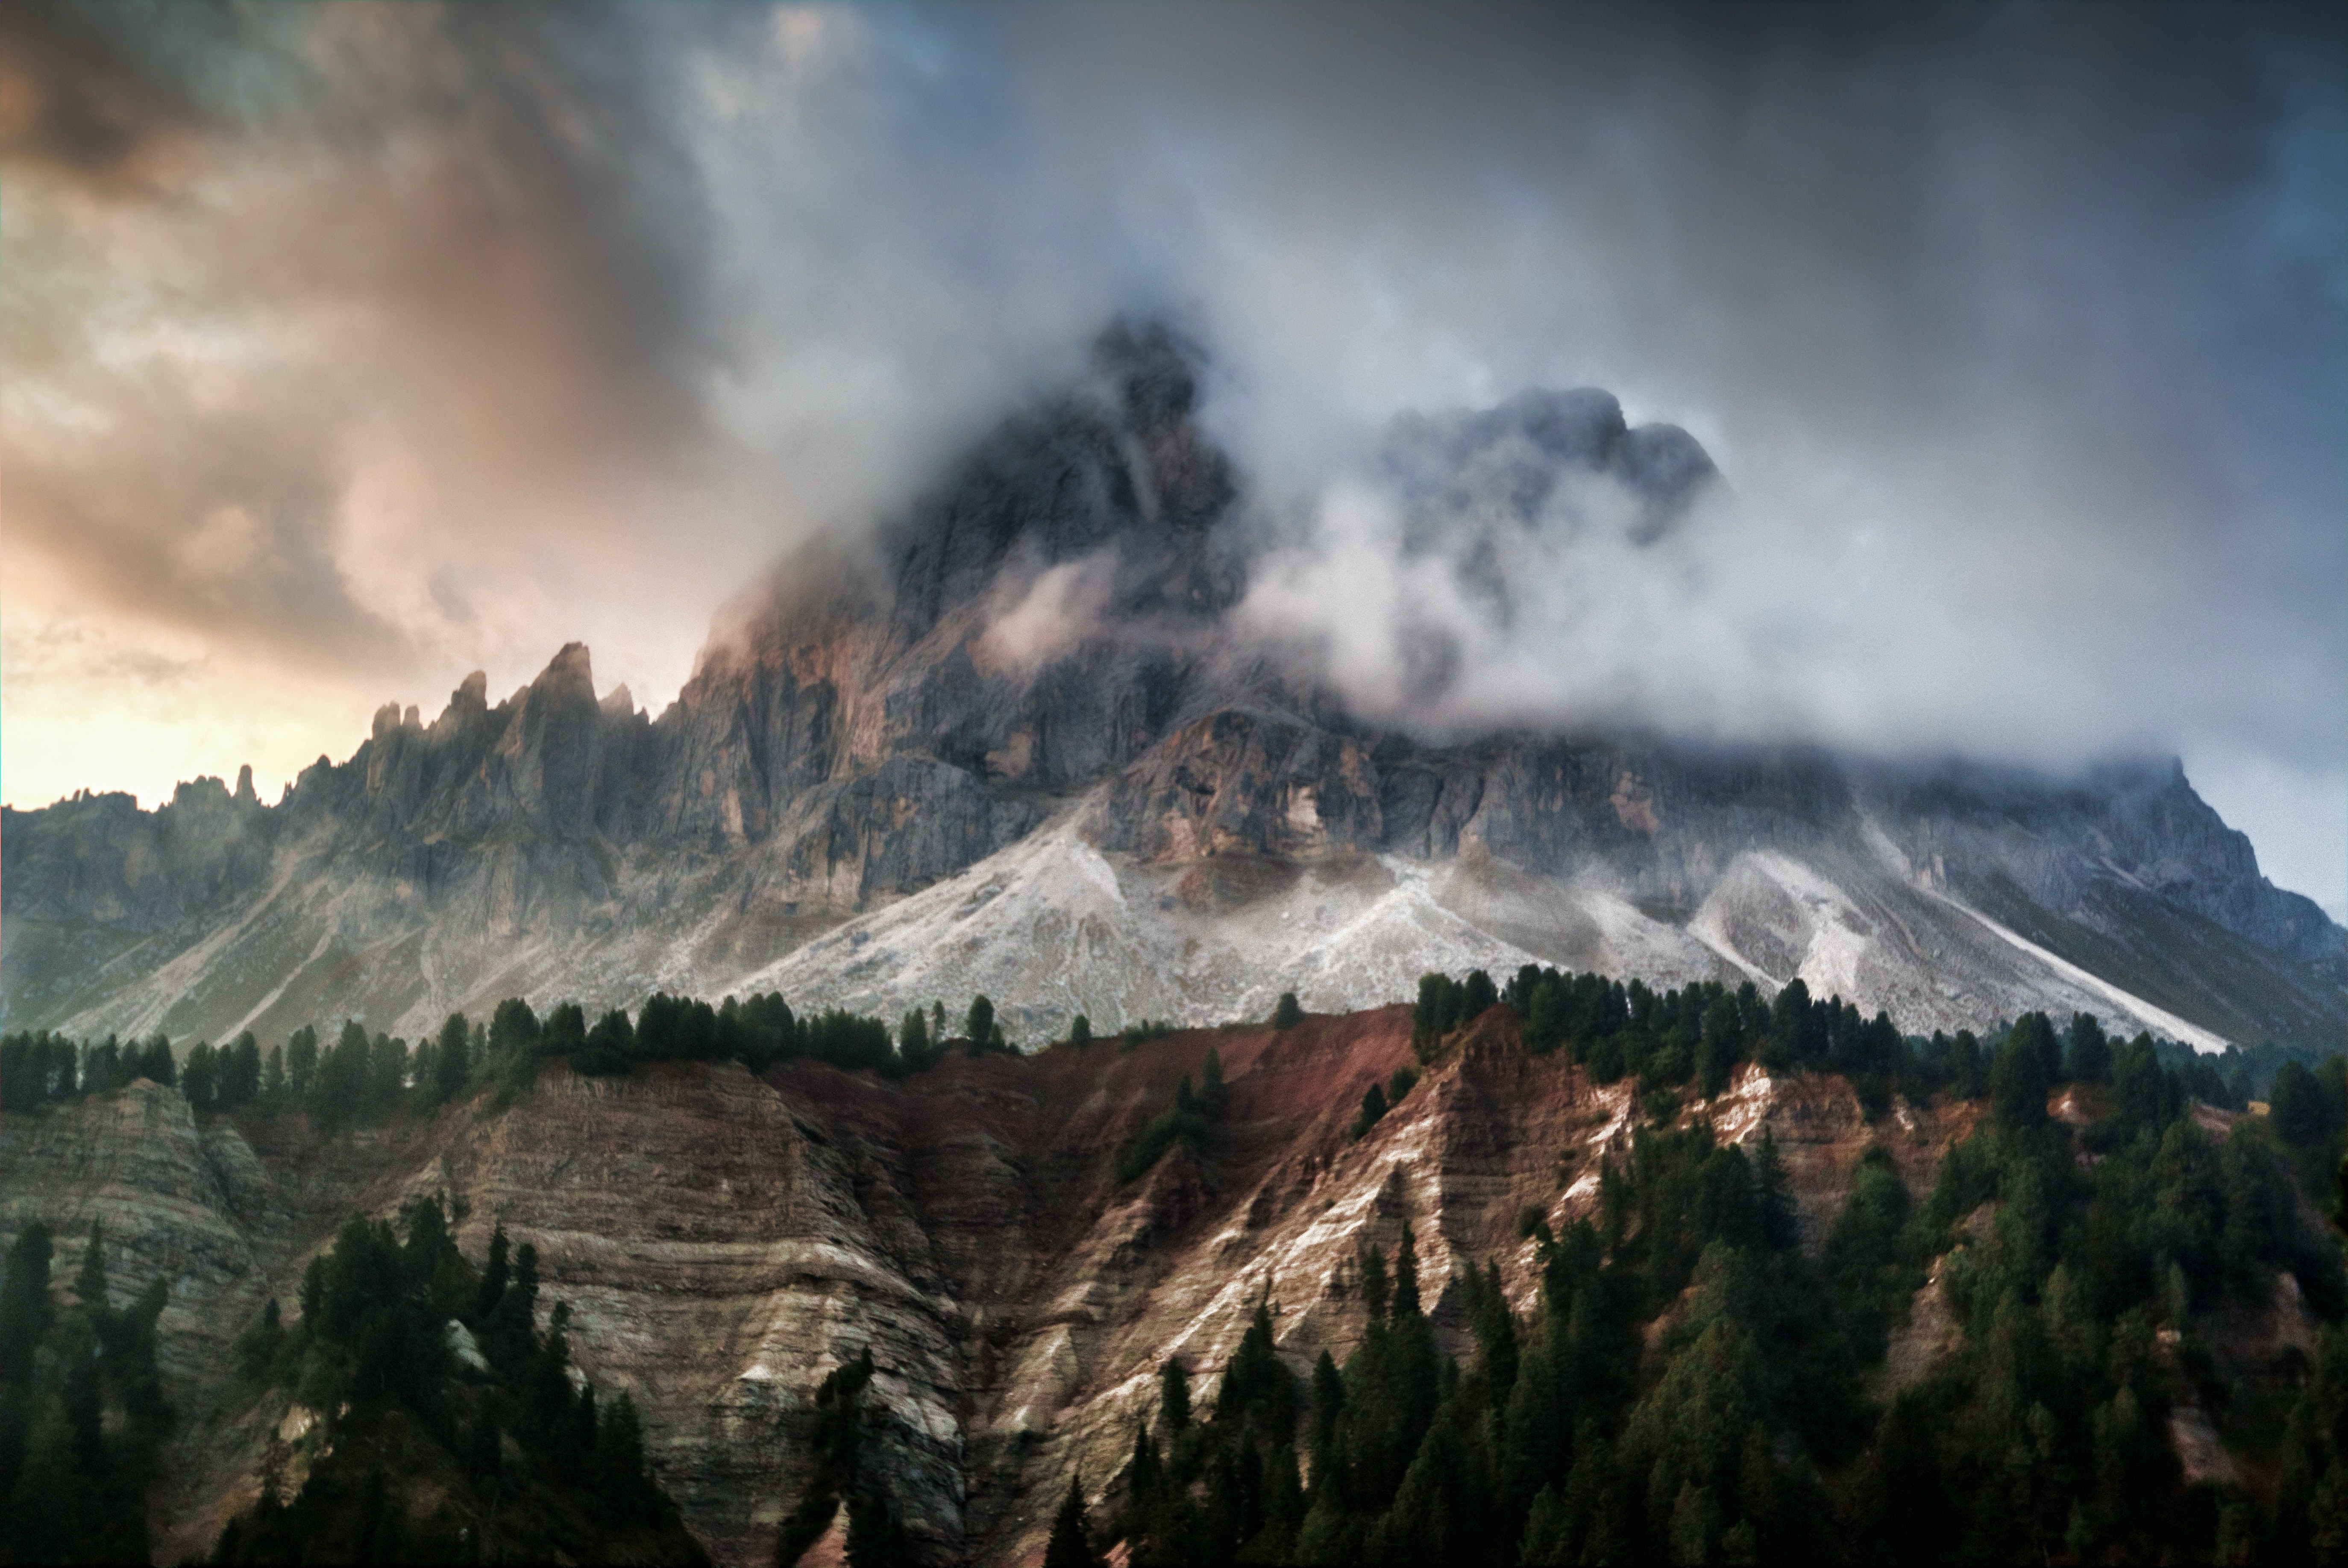 fogy mountain with green pine trees